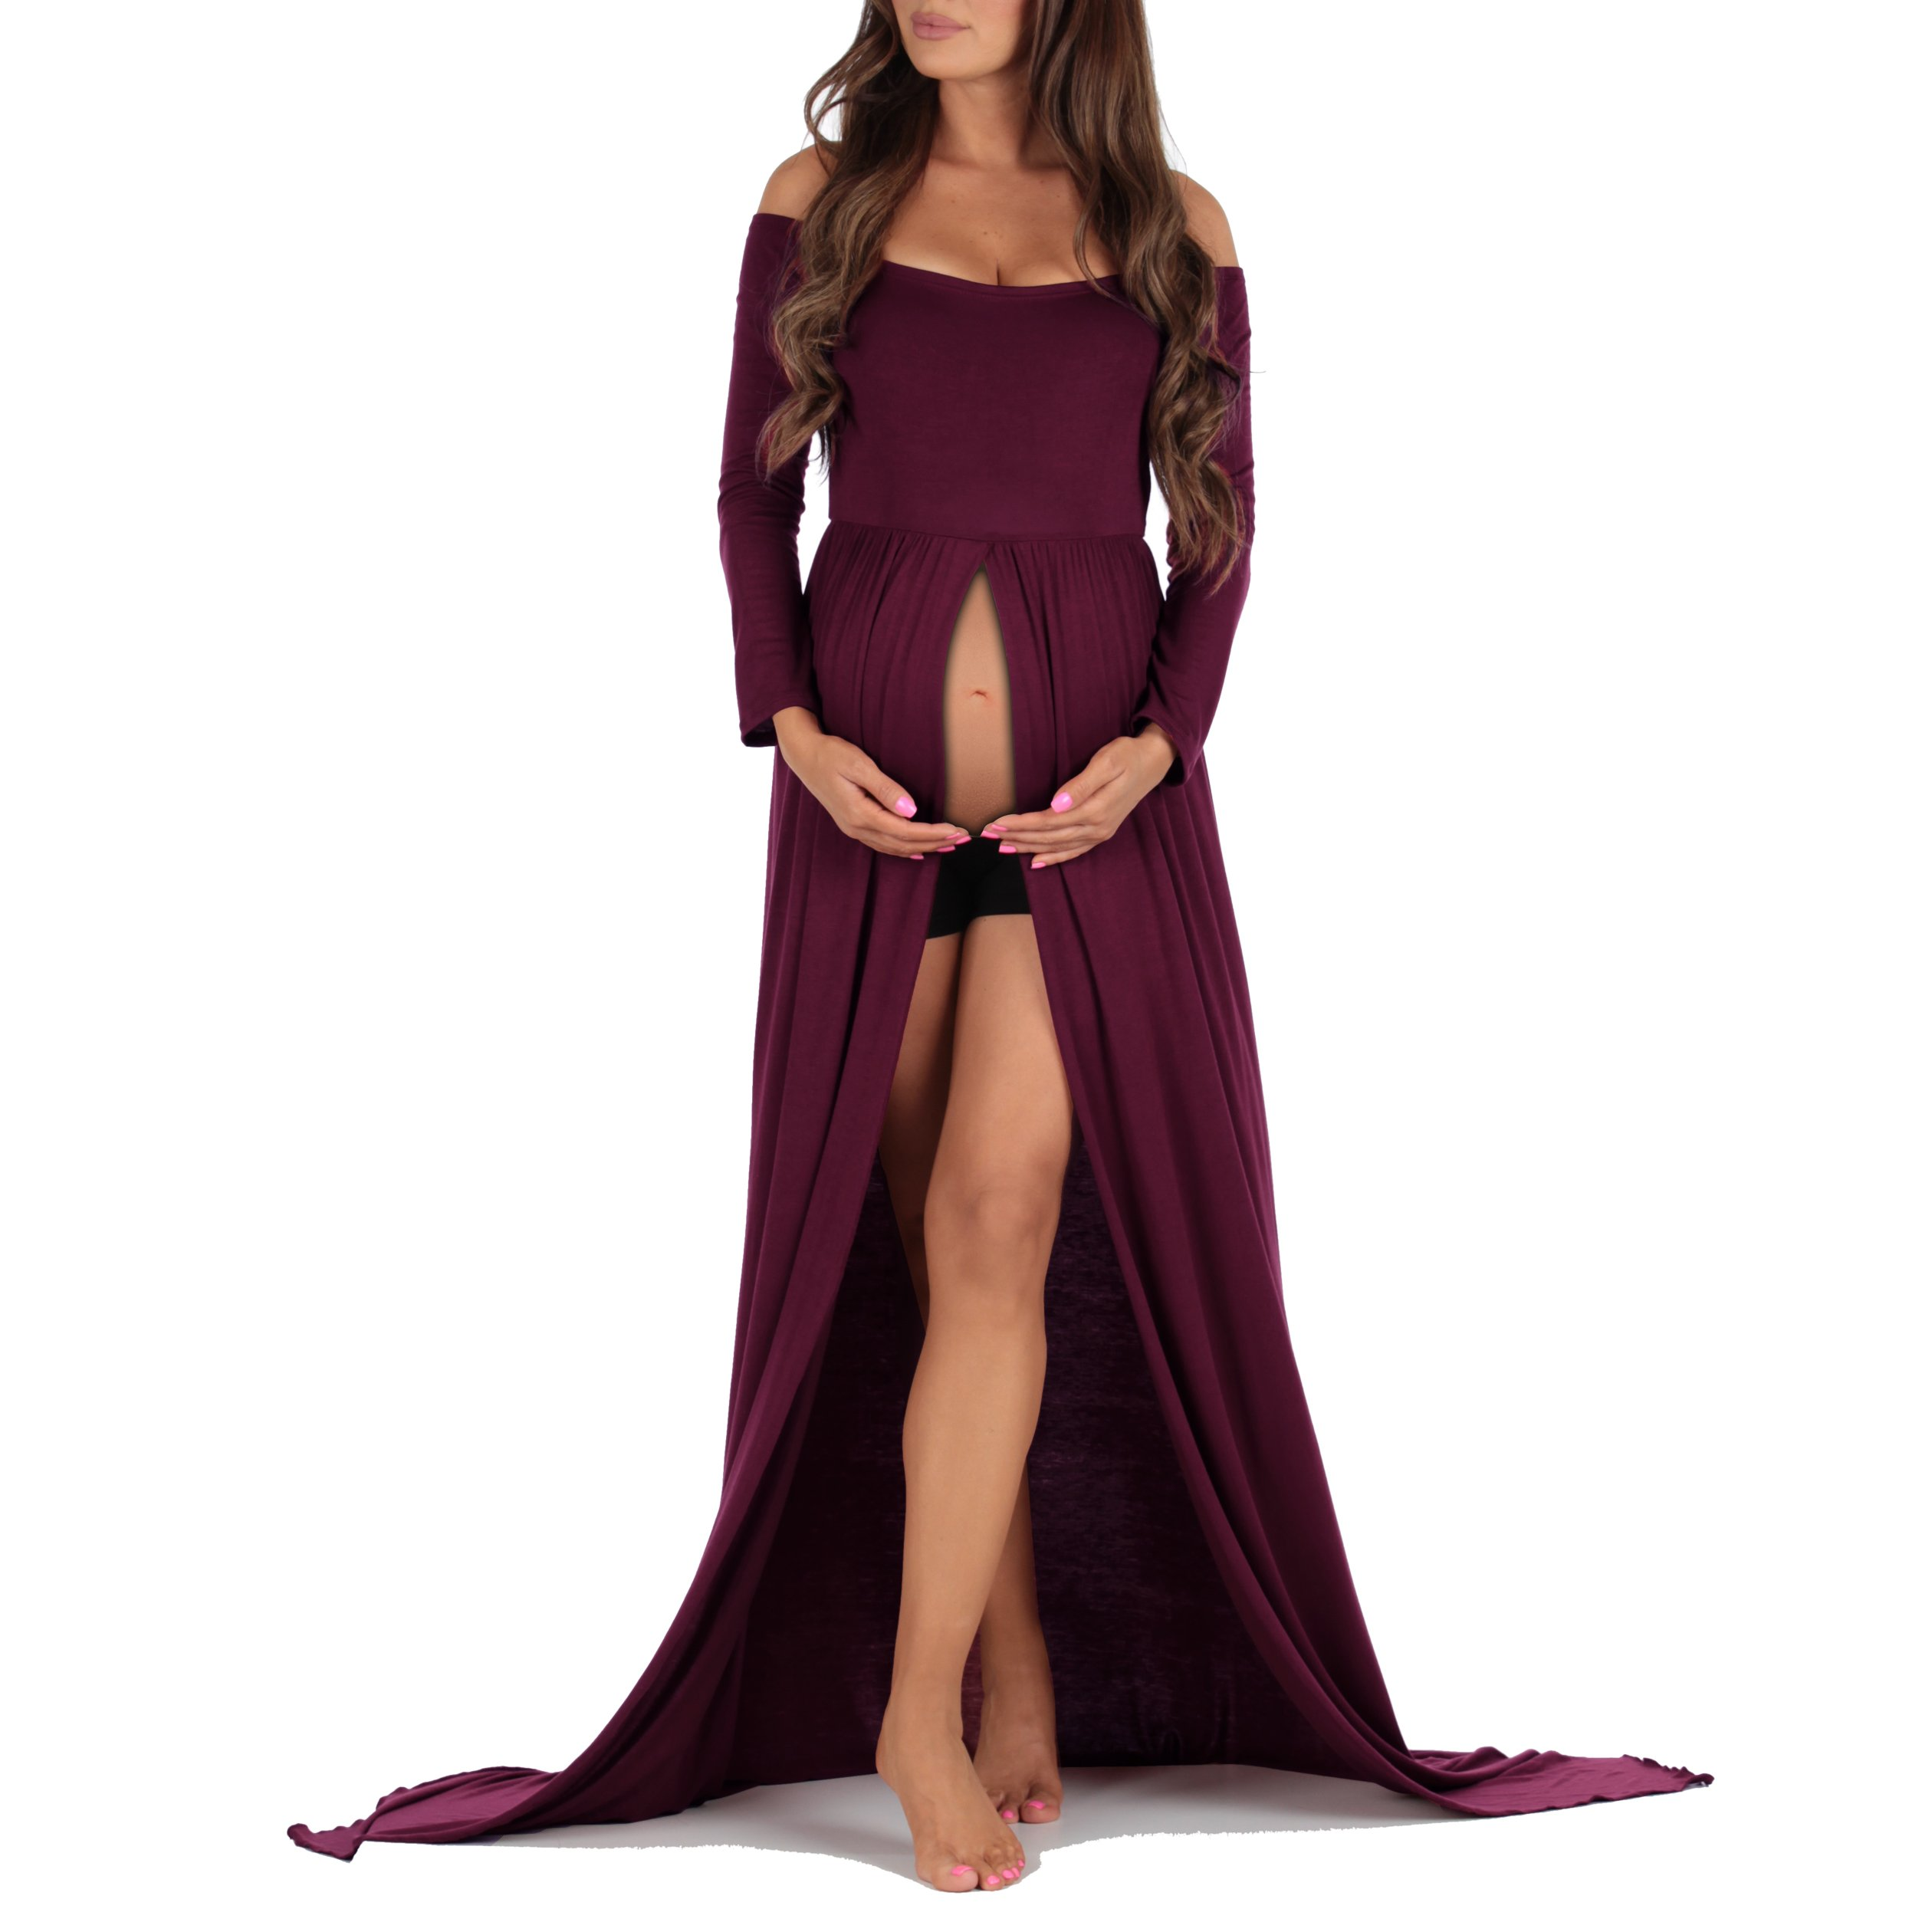 Women's Off Shoulder Maternity Gown for Photo Shoots - Made in USA